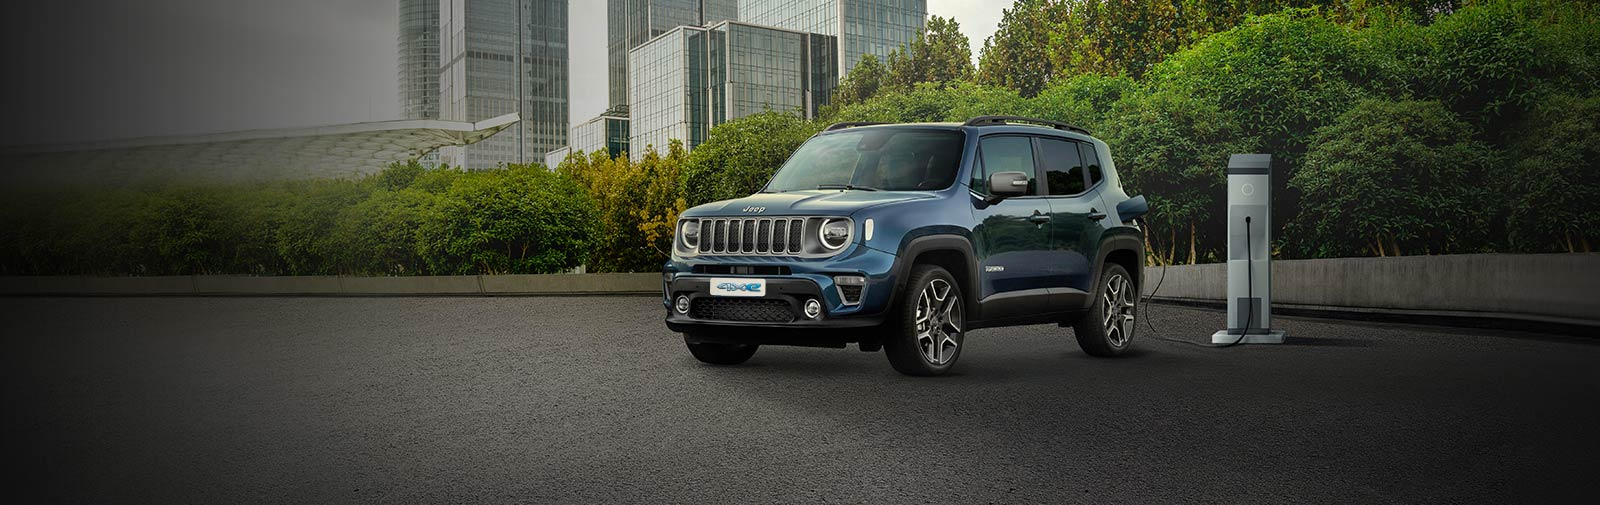 JEEP<sub>&reg;</sub> RENEGADE LIMITED 4XE PLUG-IN-HYBRID